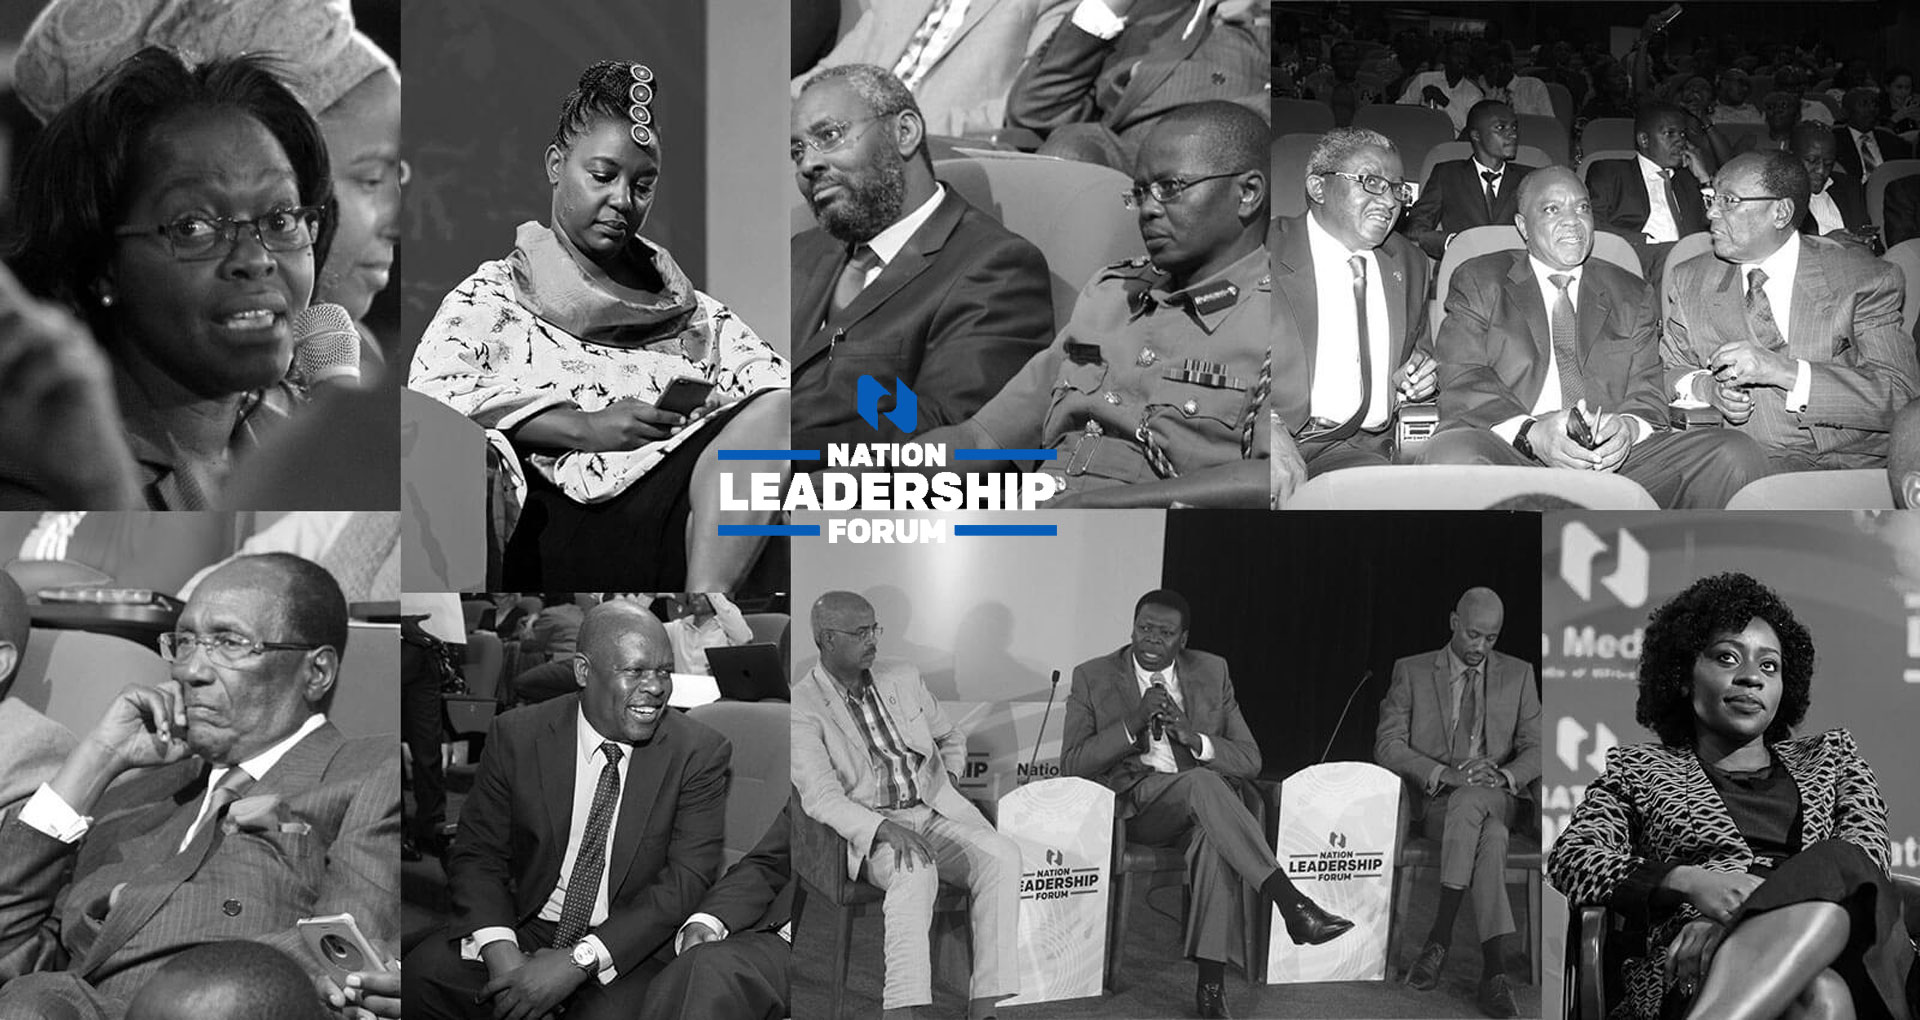 Welcome to the Nation Leadership Forum